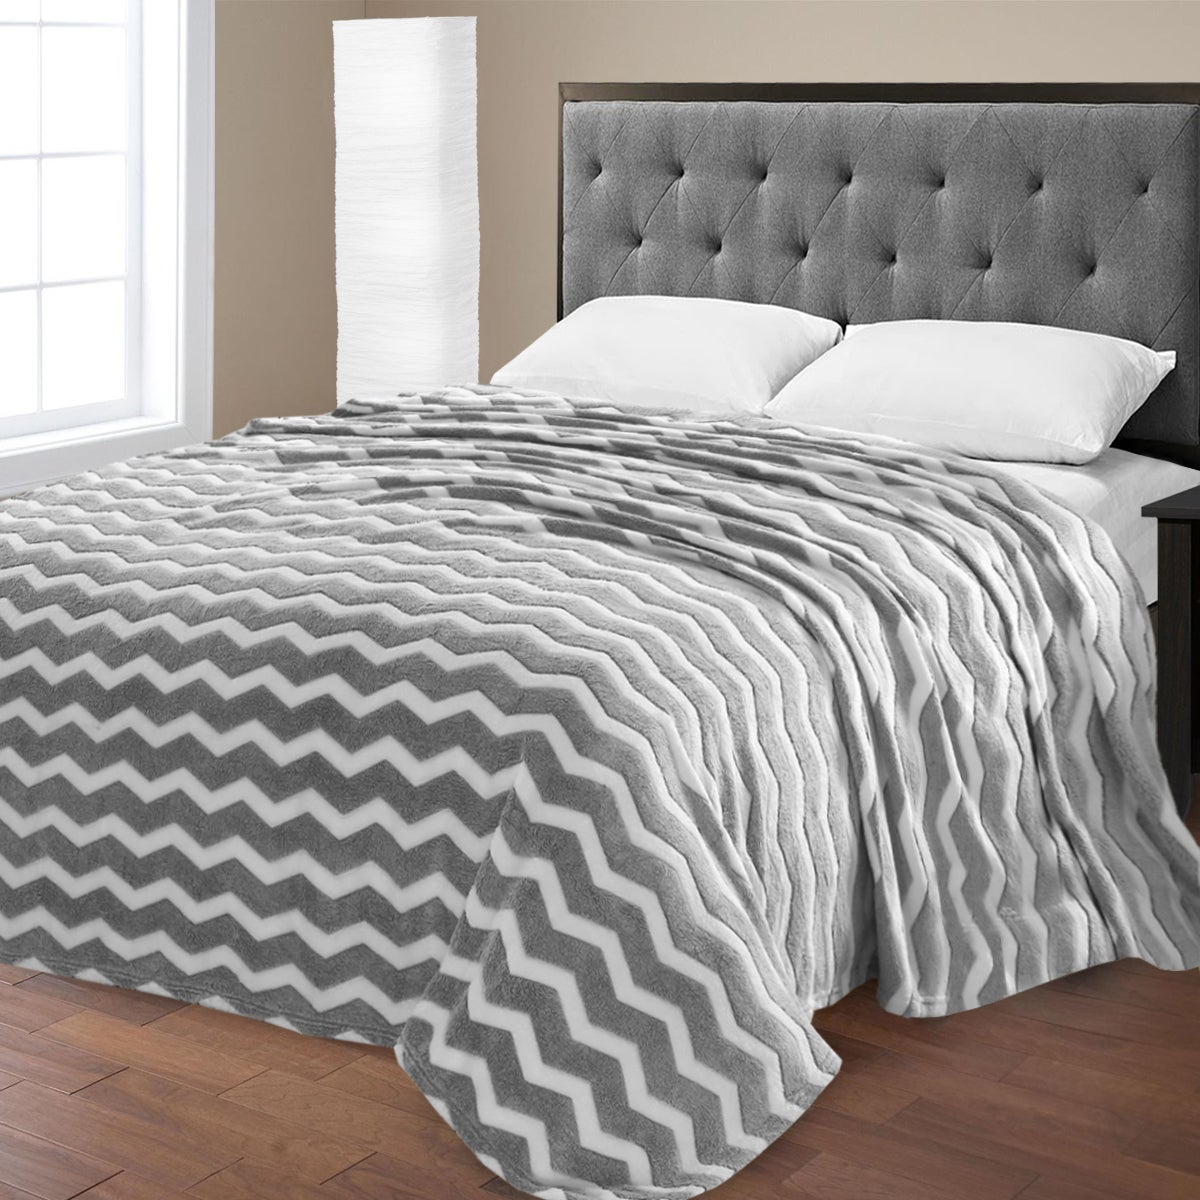 N Super Plush Chevron Print Micro Fleece Blanket (Grey - ...